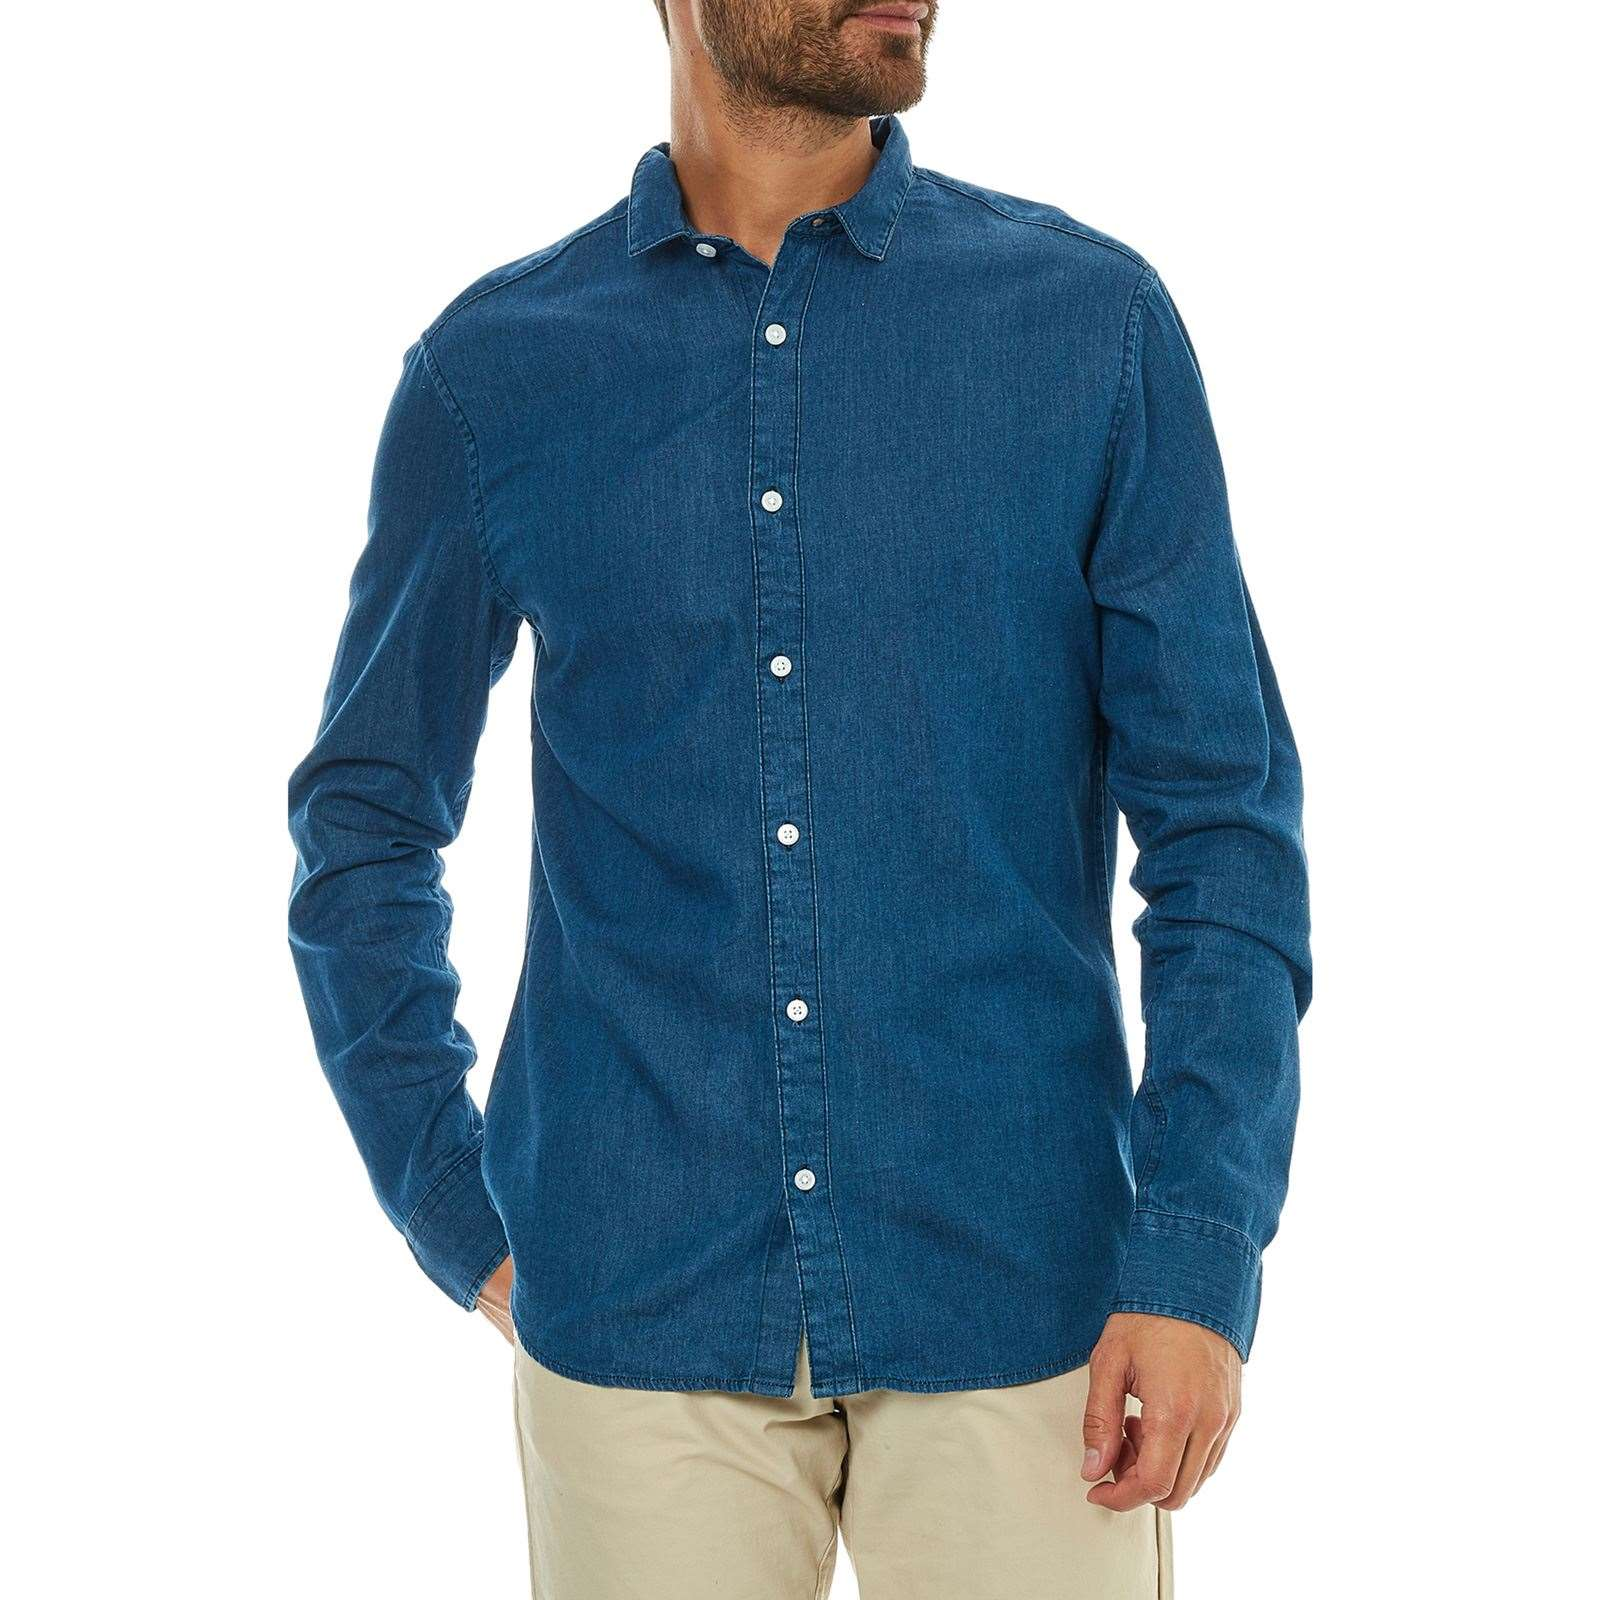 new product 0a7d0 5abe7 Only & sons Nevin - Camicia a maniche lunghe - blu jeans ...